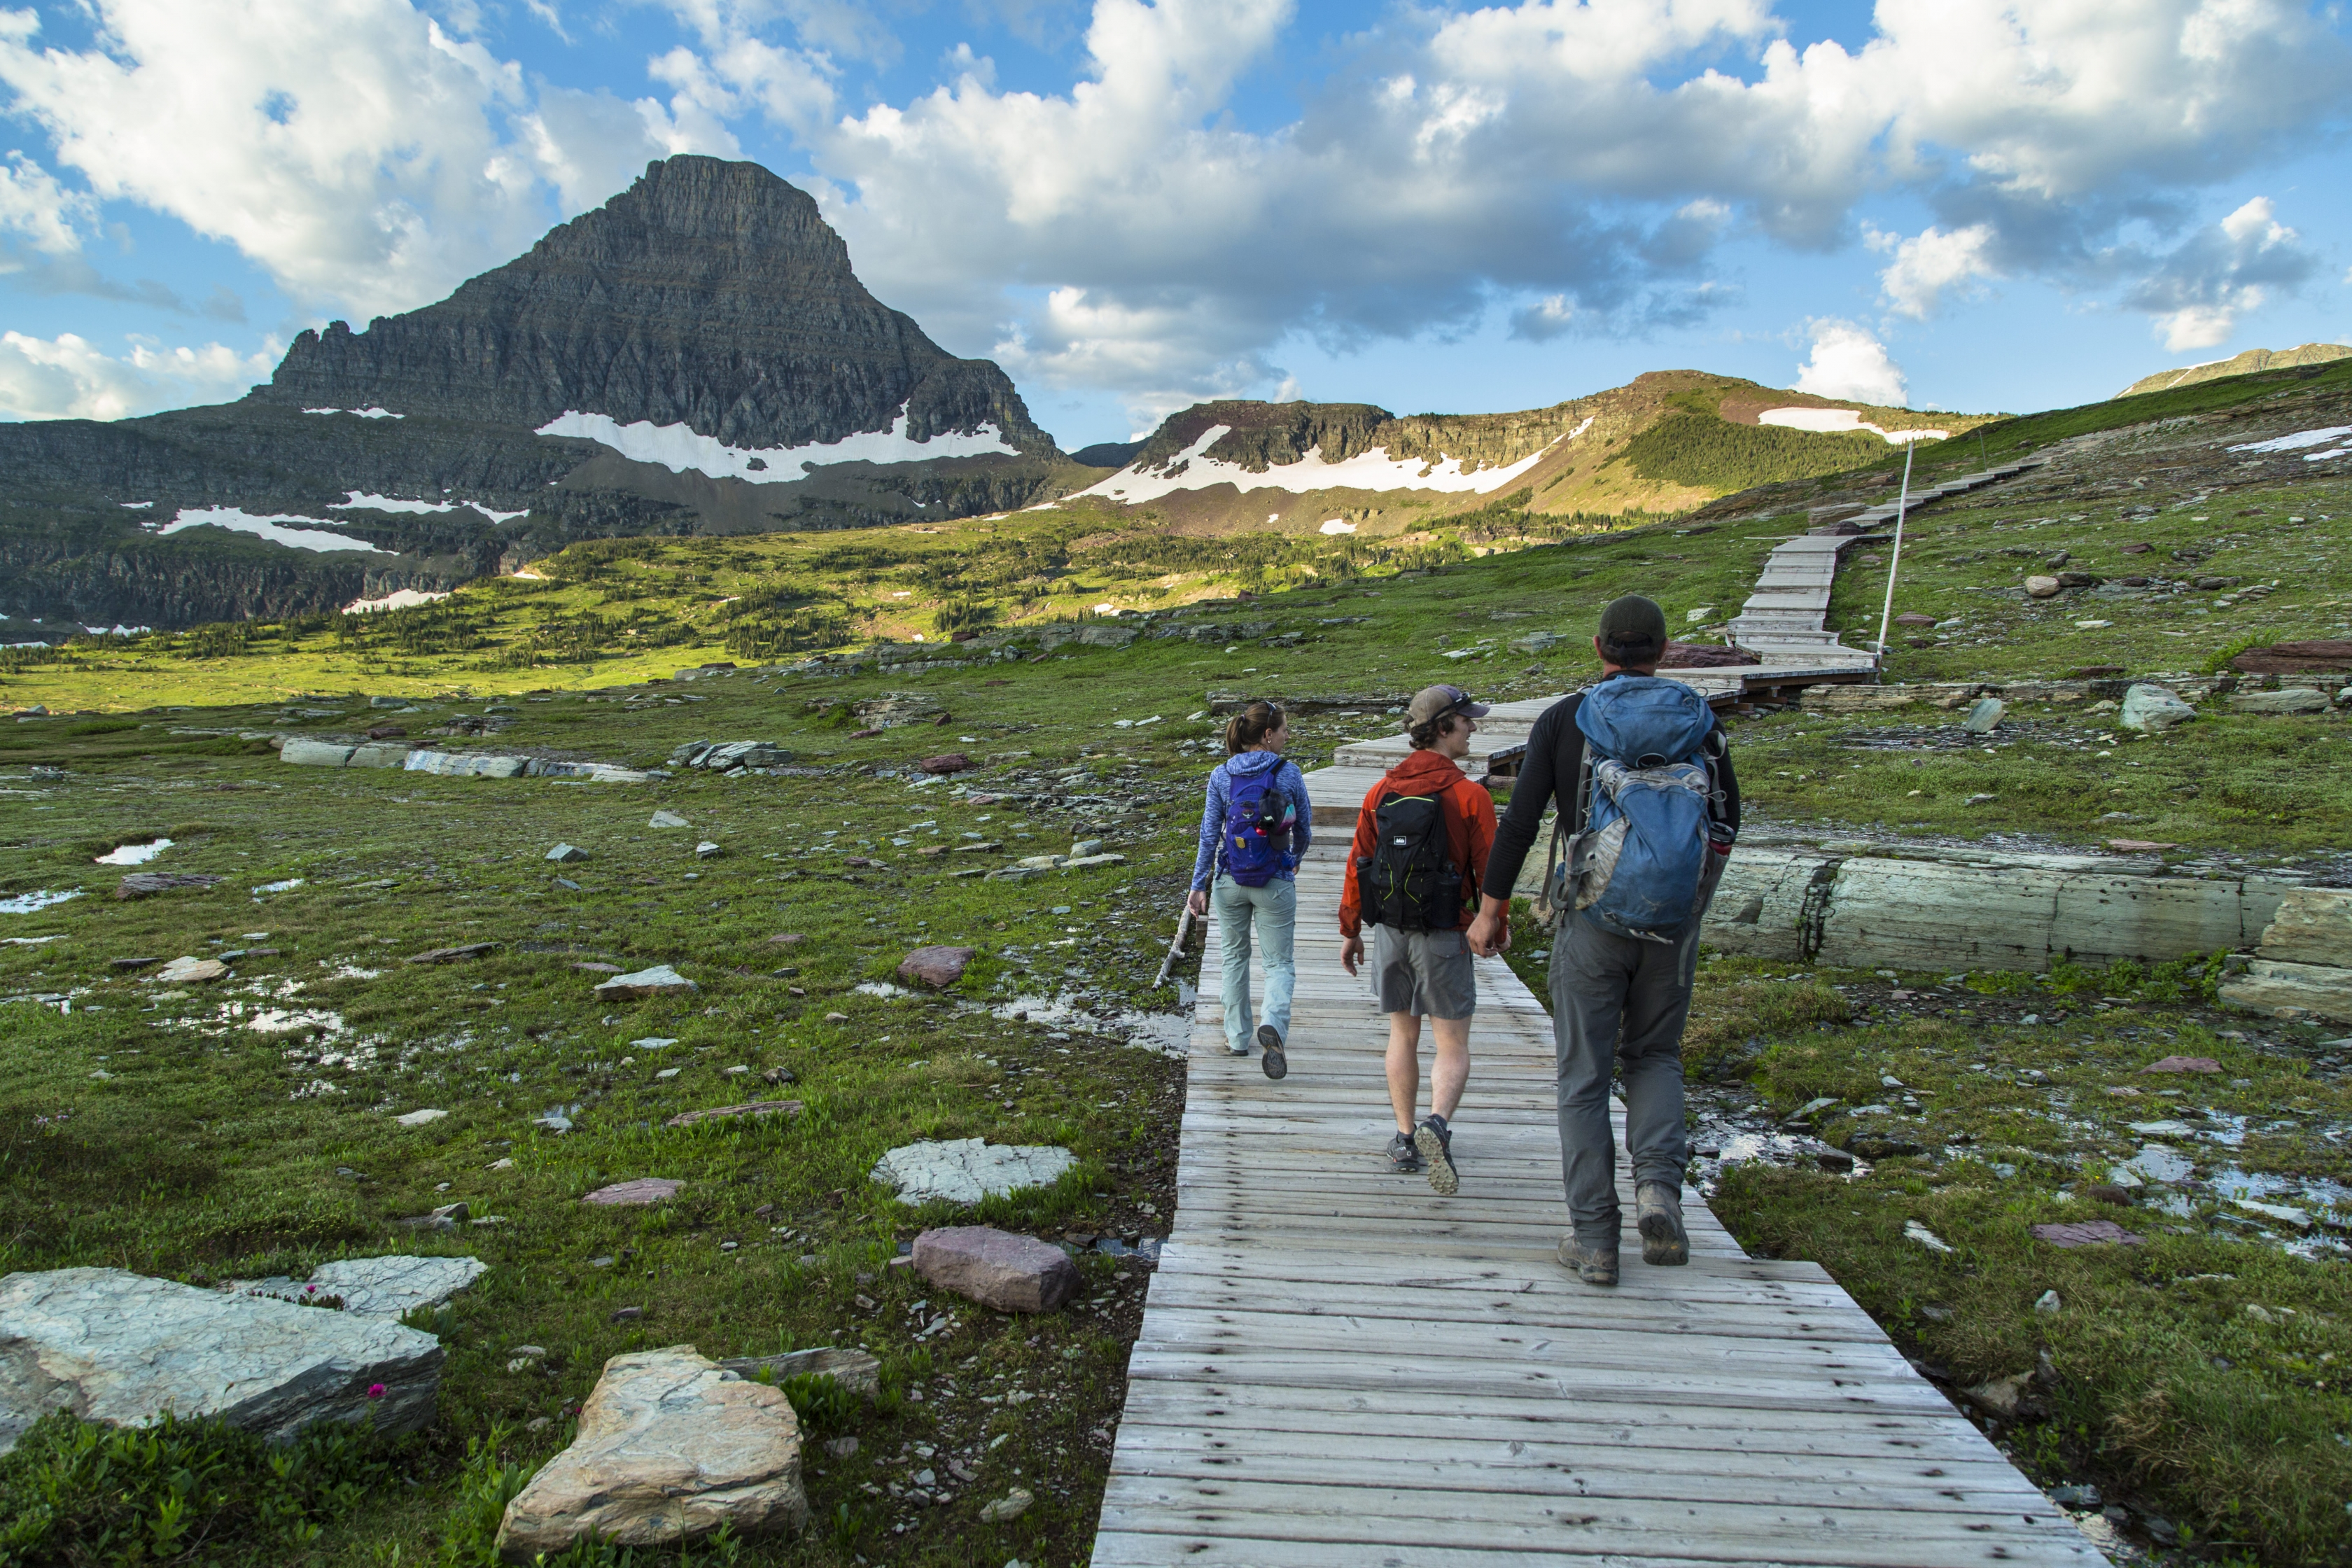 A group of three hikers in Glacier National Park.